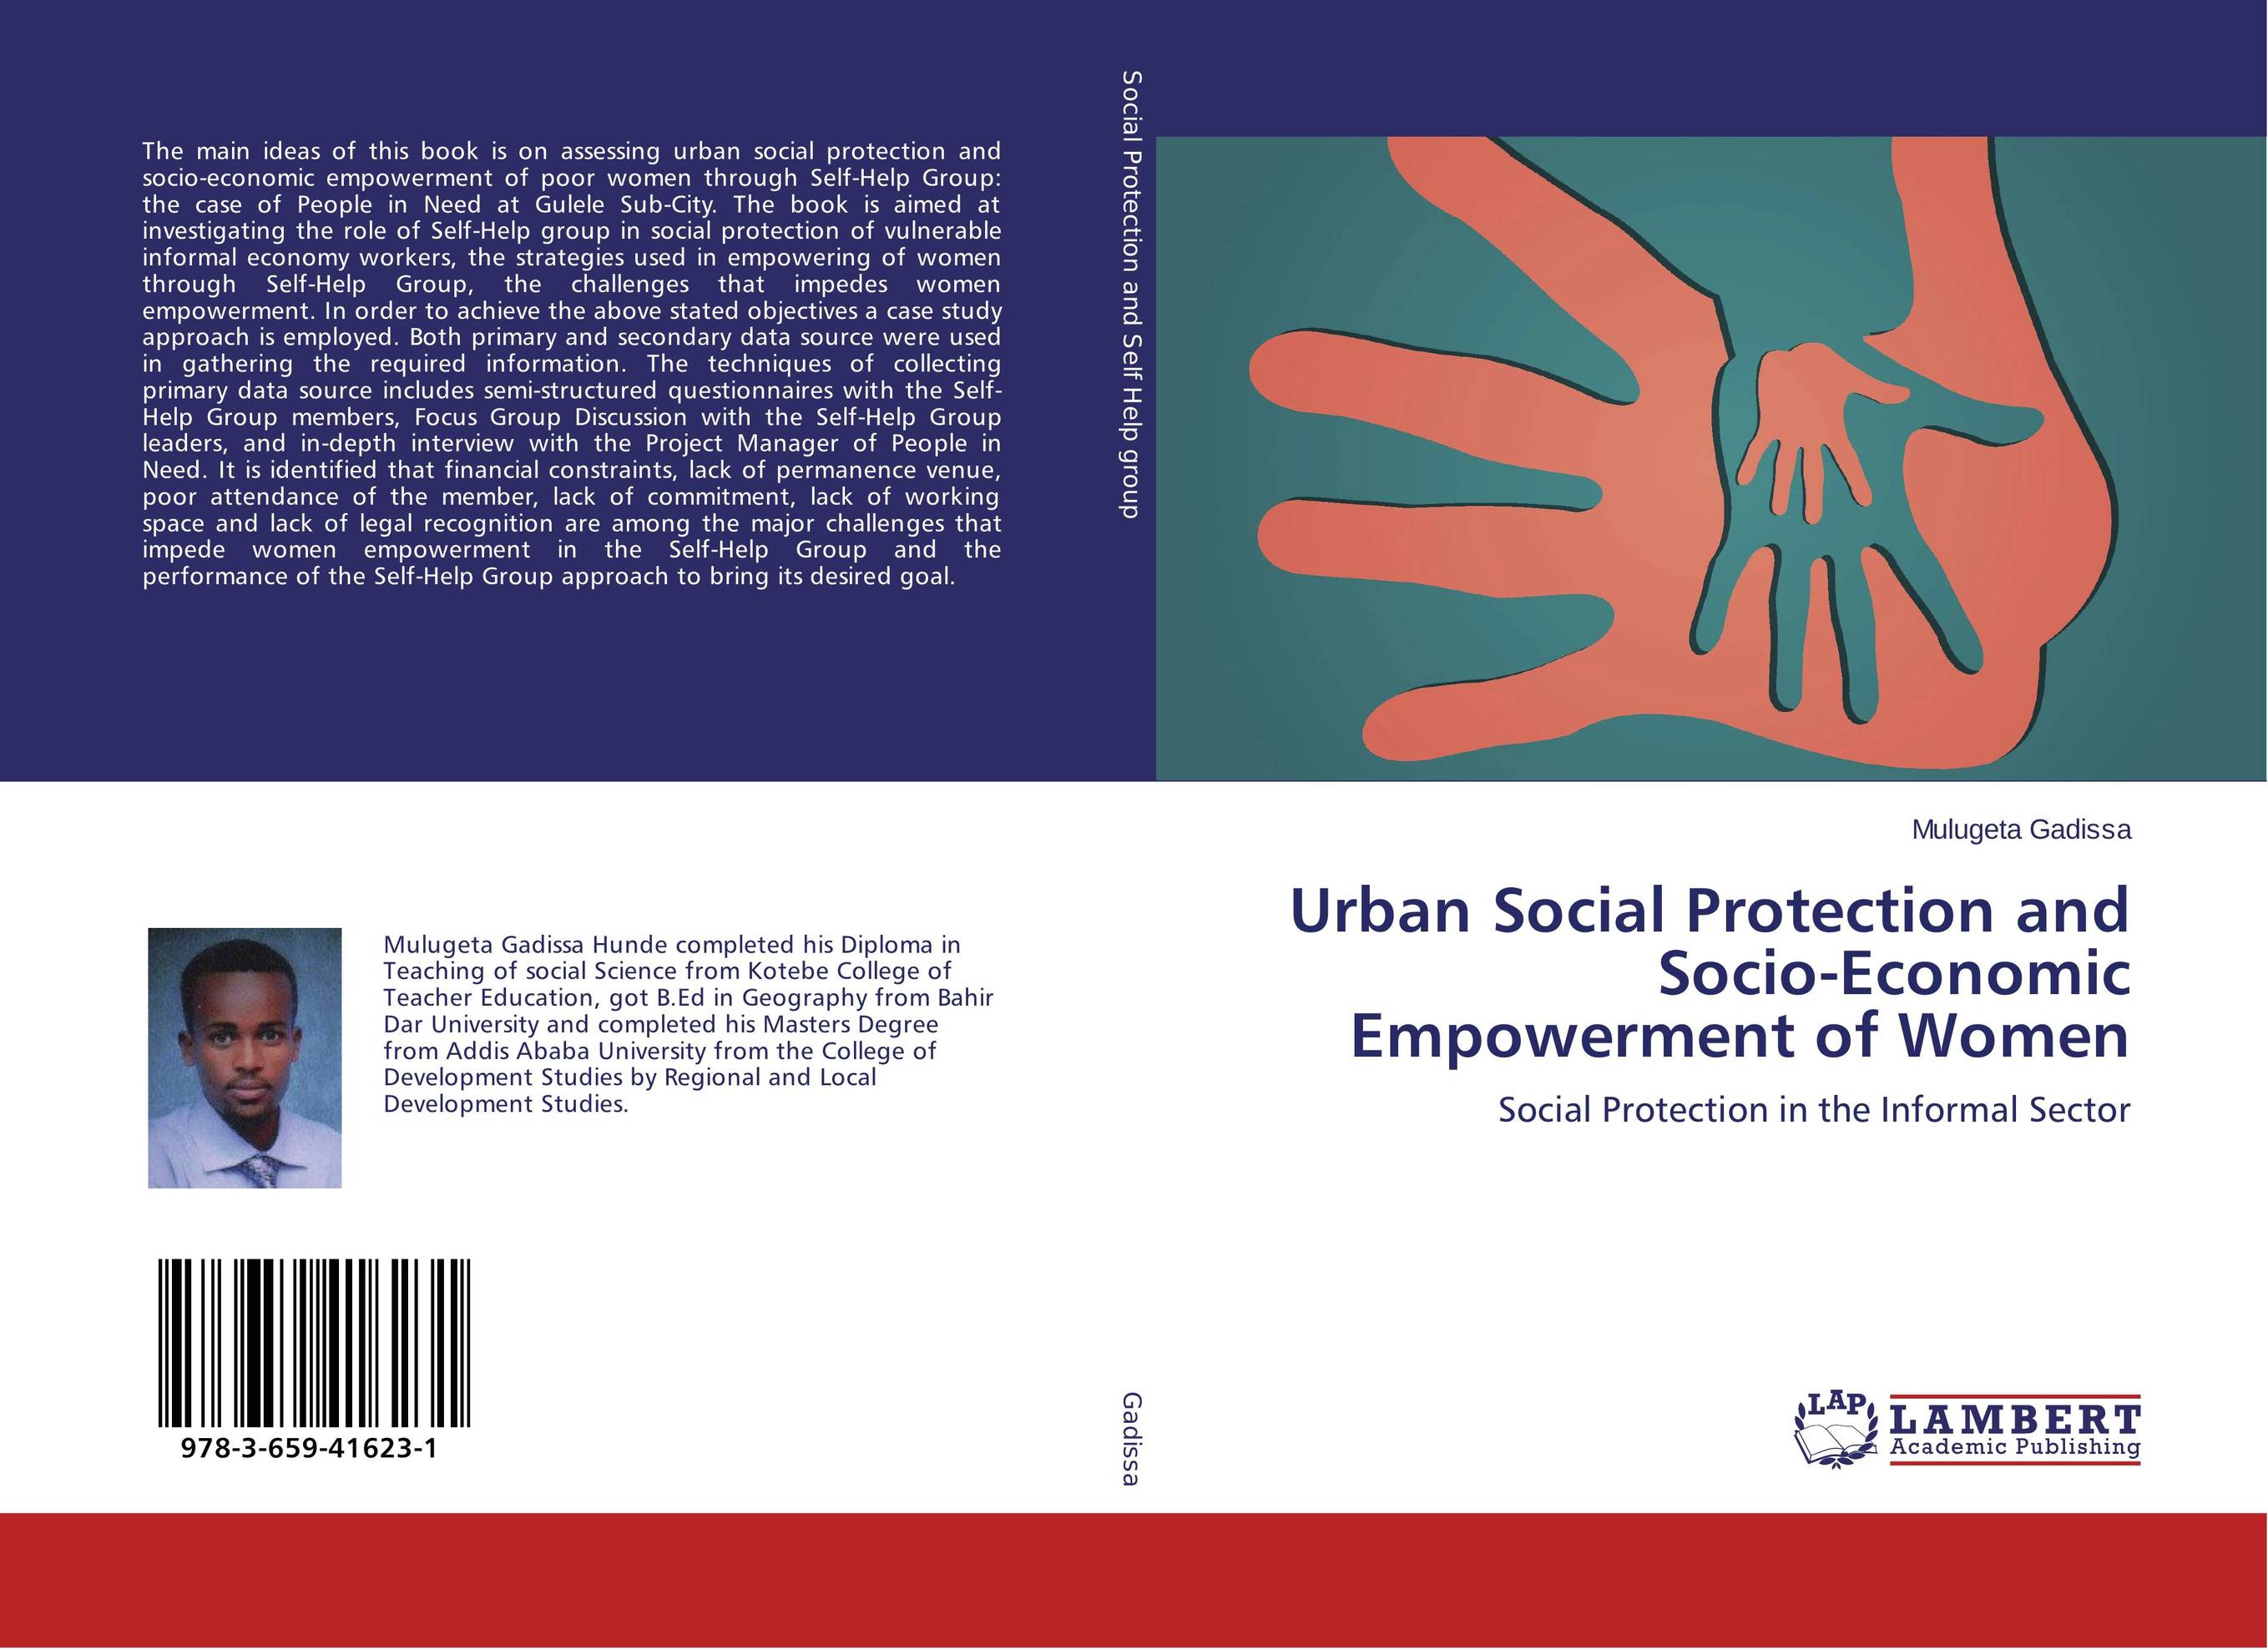 Urban Social Protection and Socio-Economic Empowerment of Women the viabilities of musyarakah as social protection mechanism